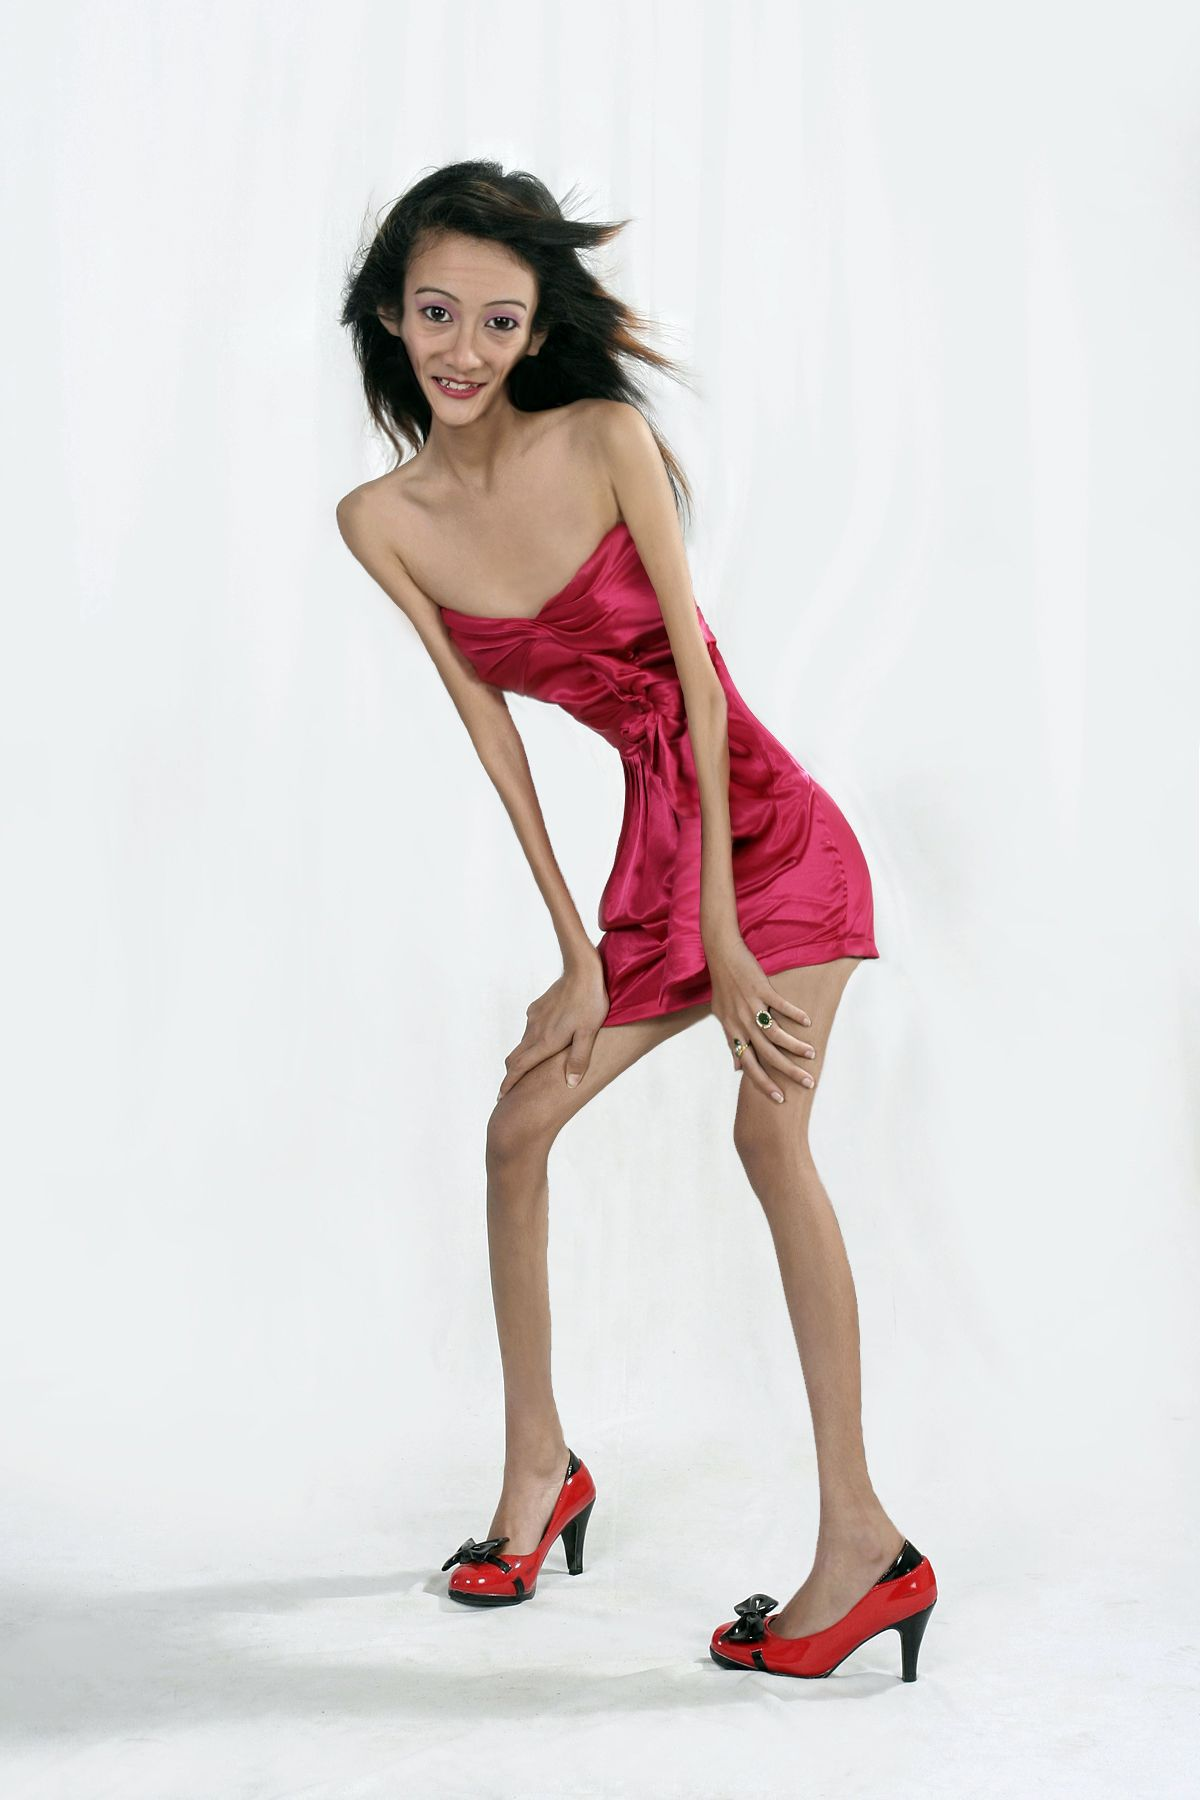 Anorexic japanese